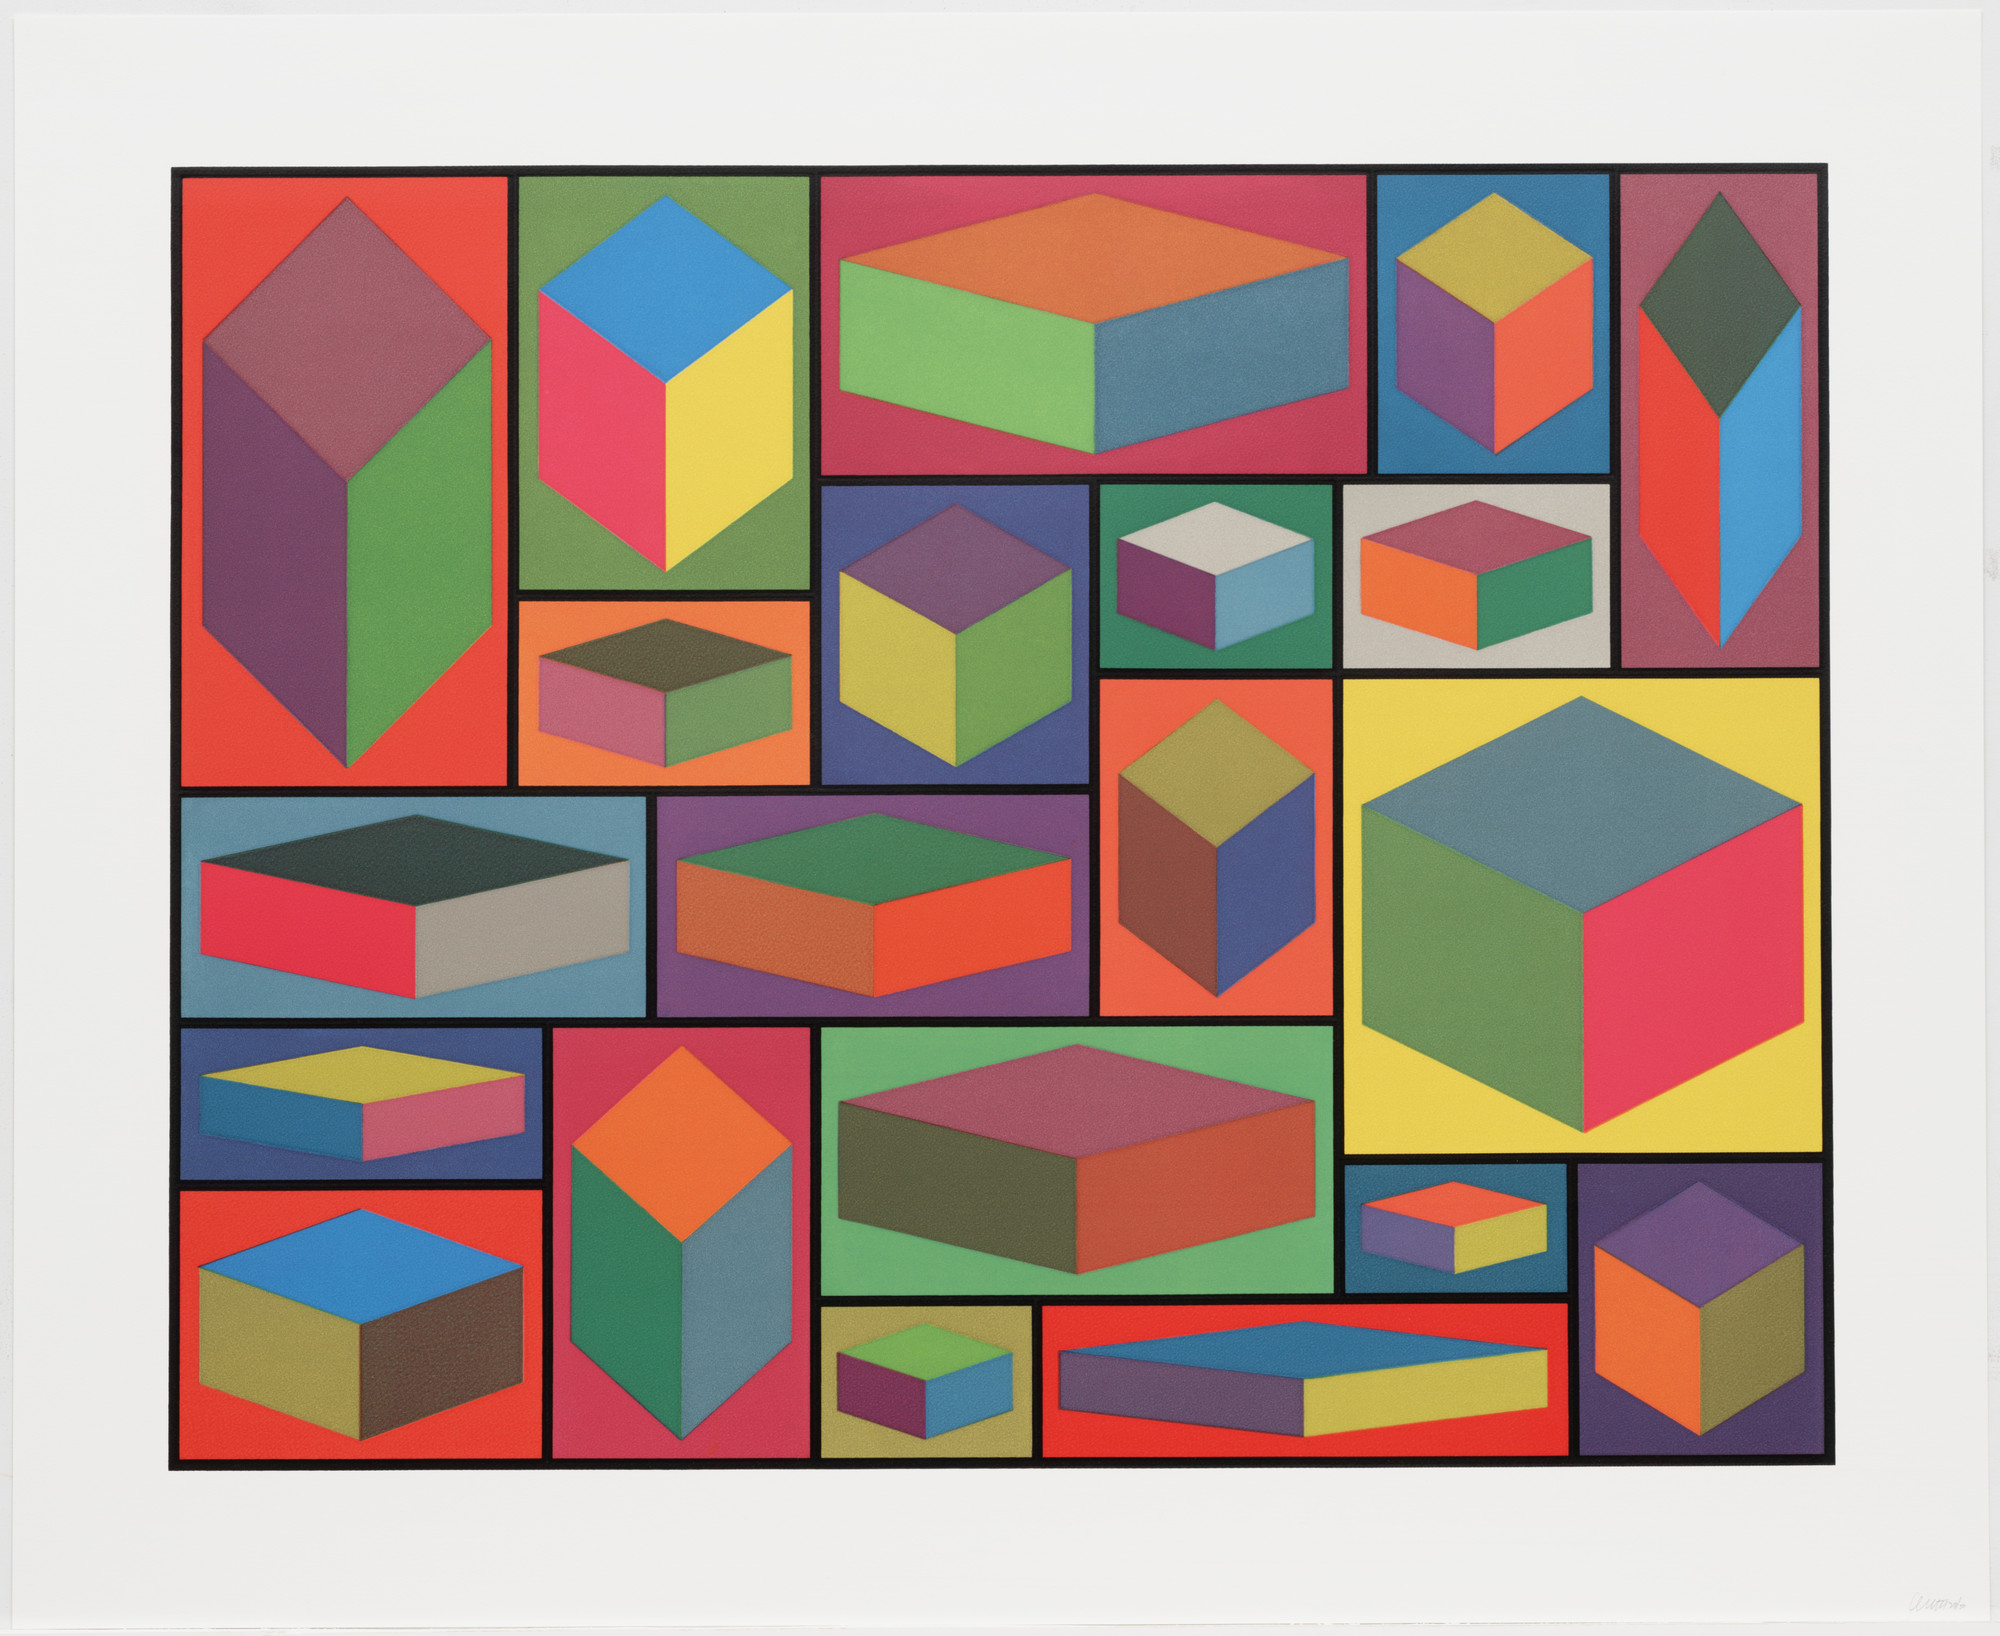 Sol LeWitt. Distorted Cubes (D) from Distorted Cubes (A-E). 2001